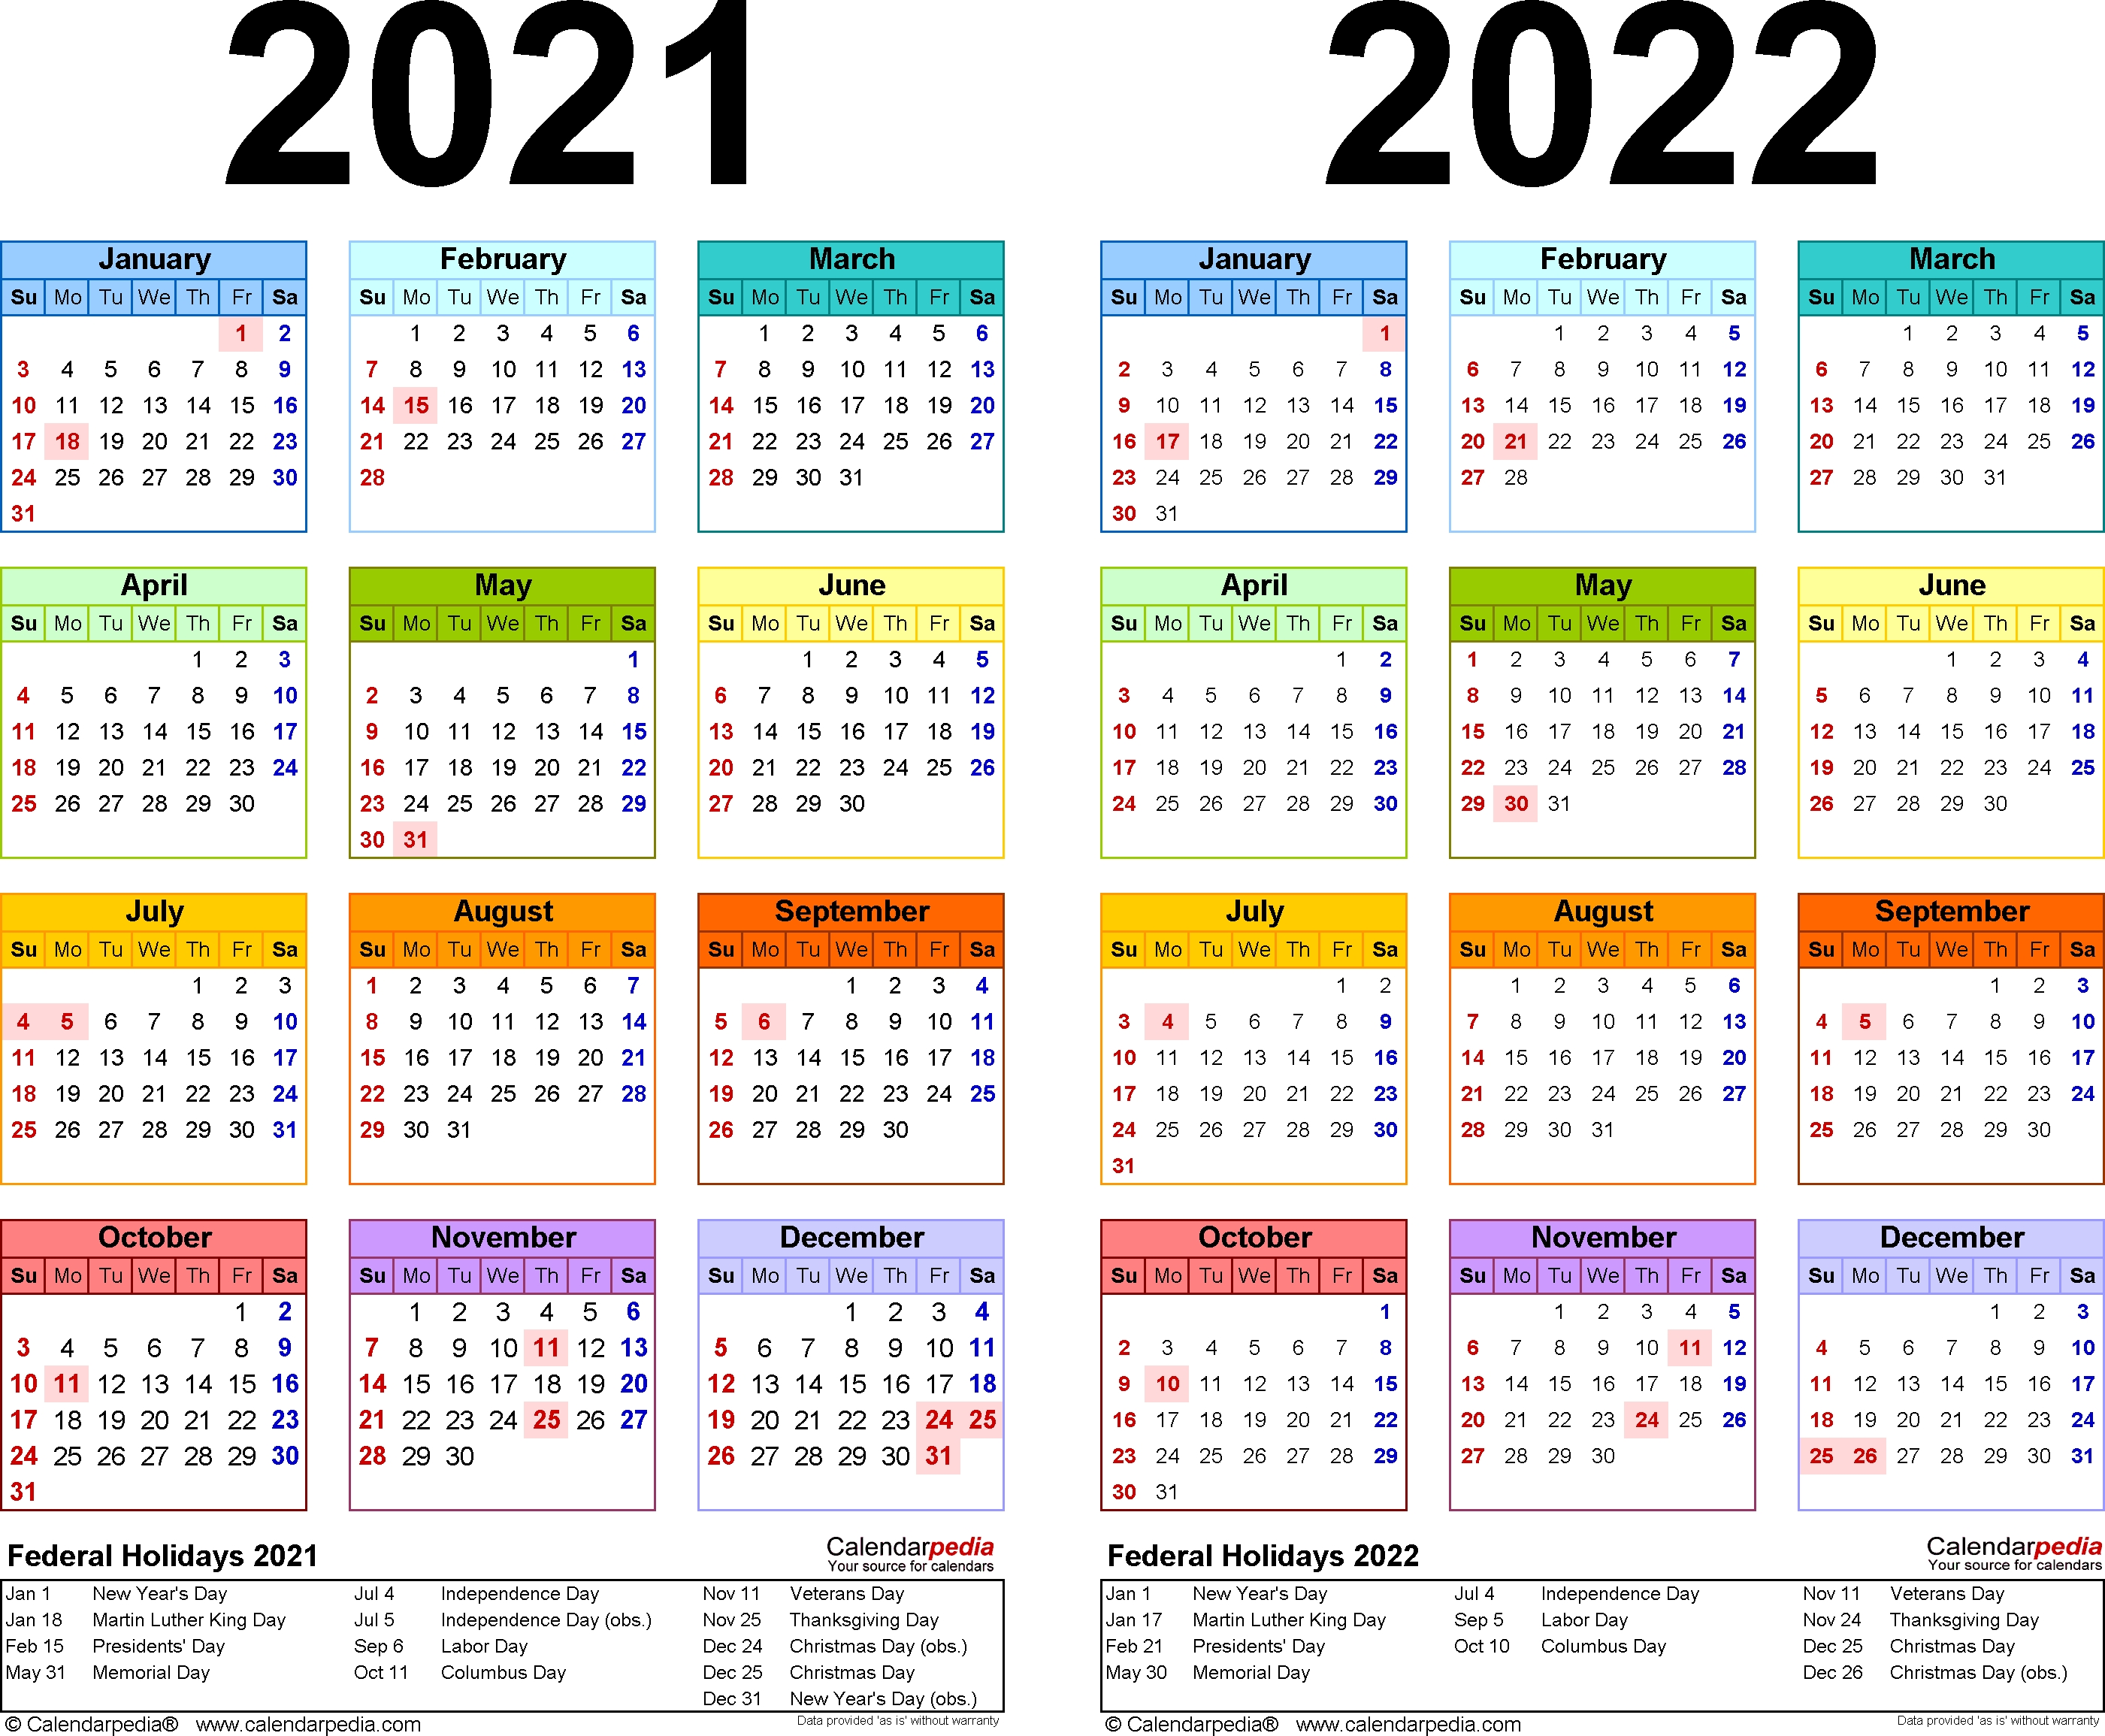 2021-2022 Two Year Calendar - Free Printable Microsoft Word regarding May Calendars For 2019 2020 2021 And 2022